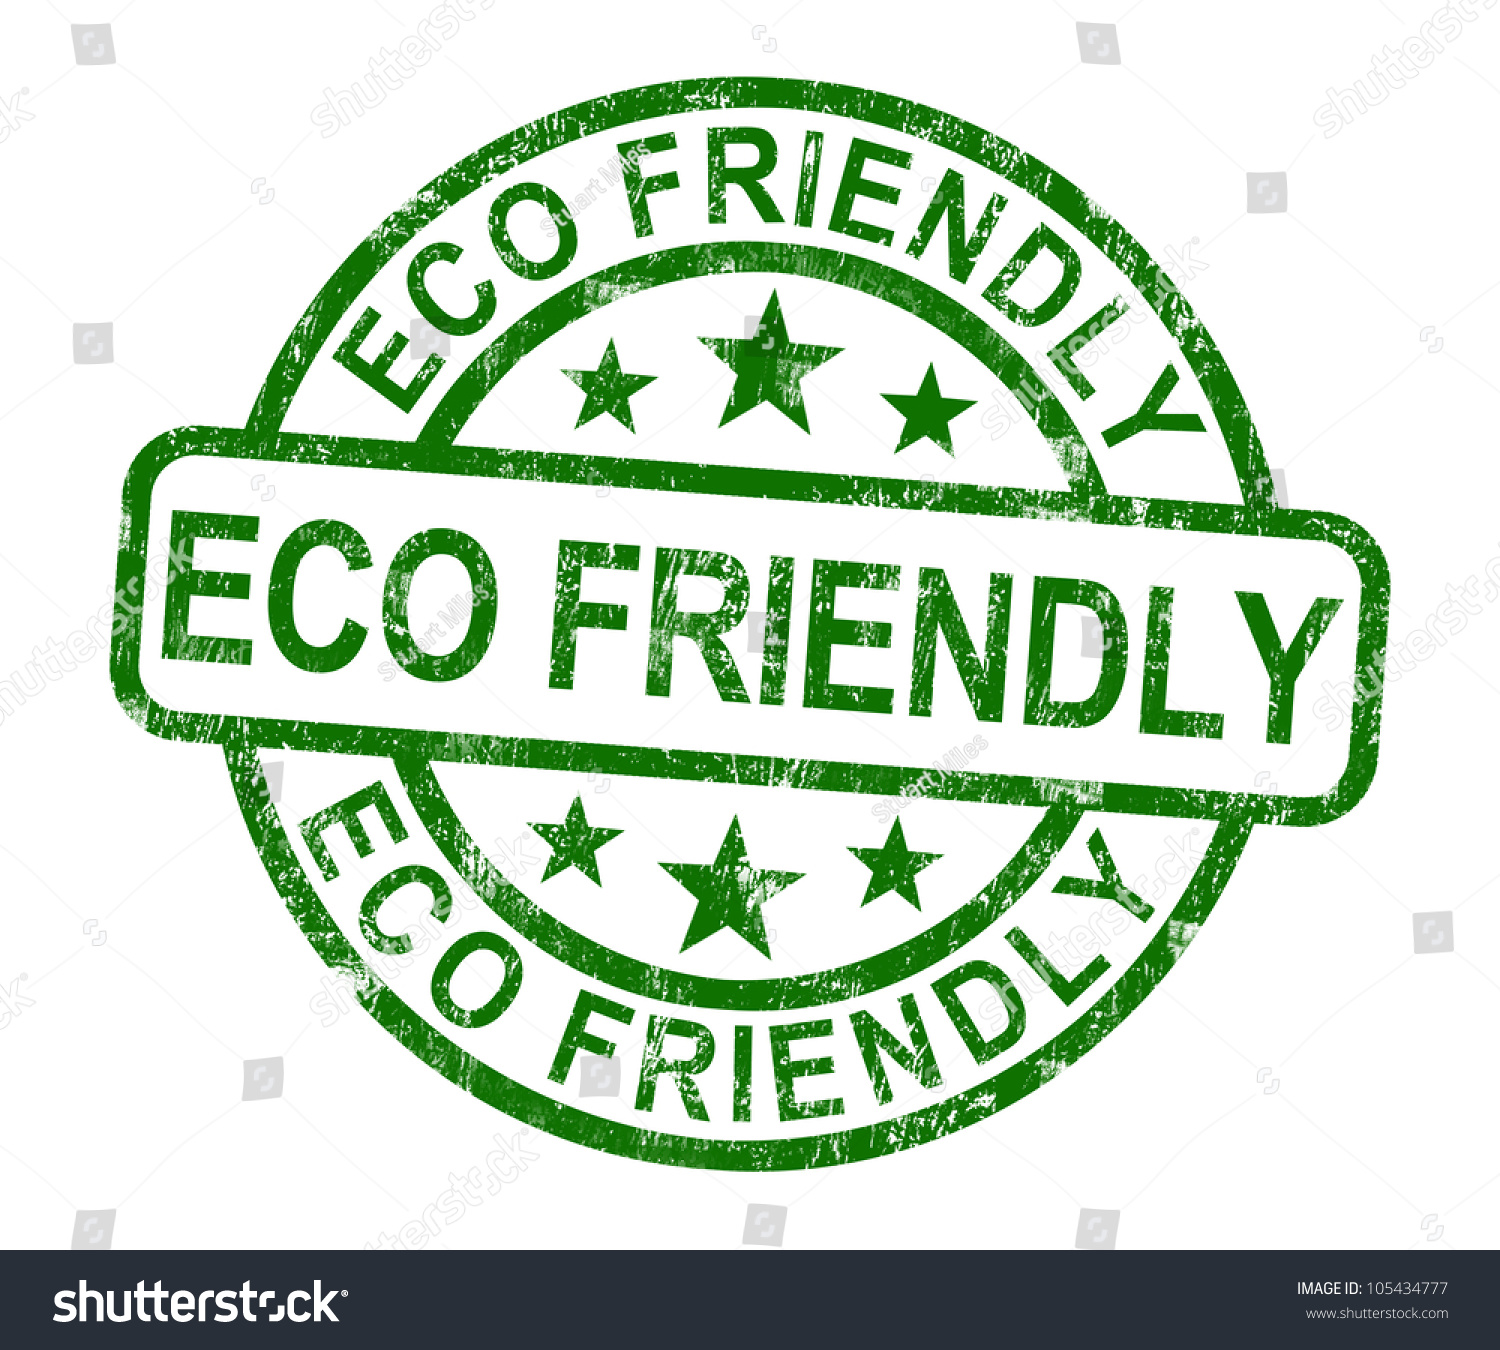 eco friendly If you're looking to go green without the commitment, check out these 50 easy eco-friendly tips anyone can master.